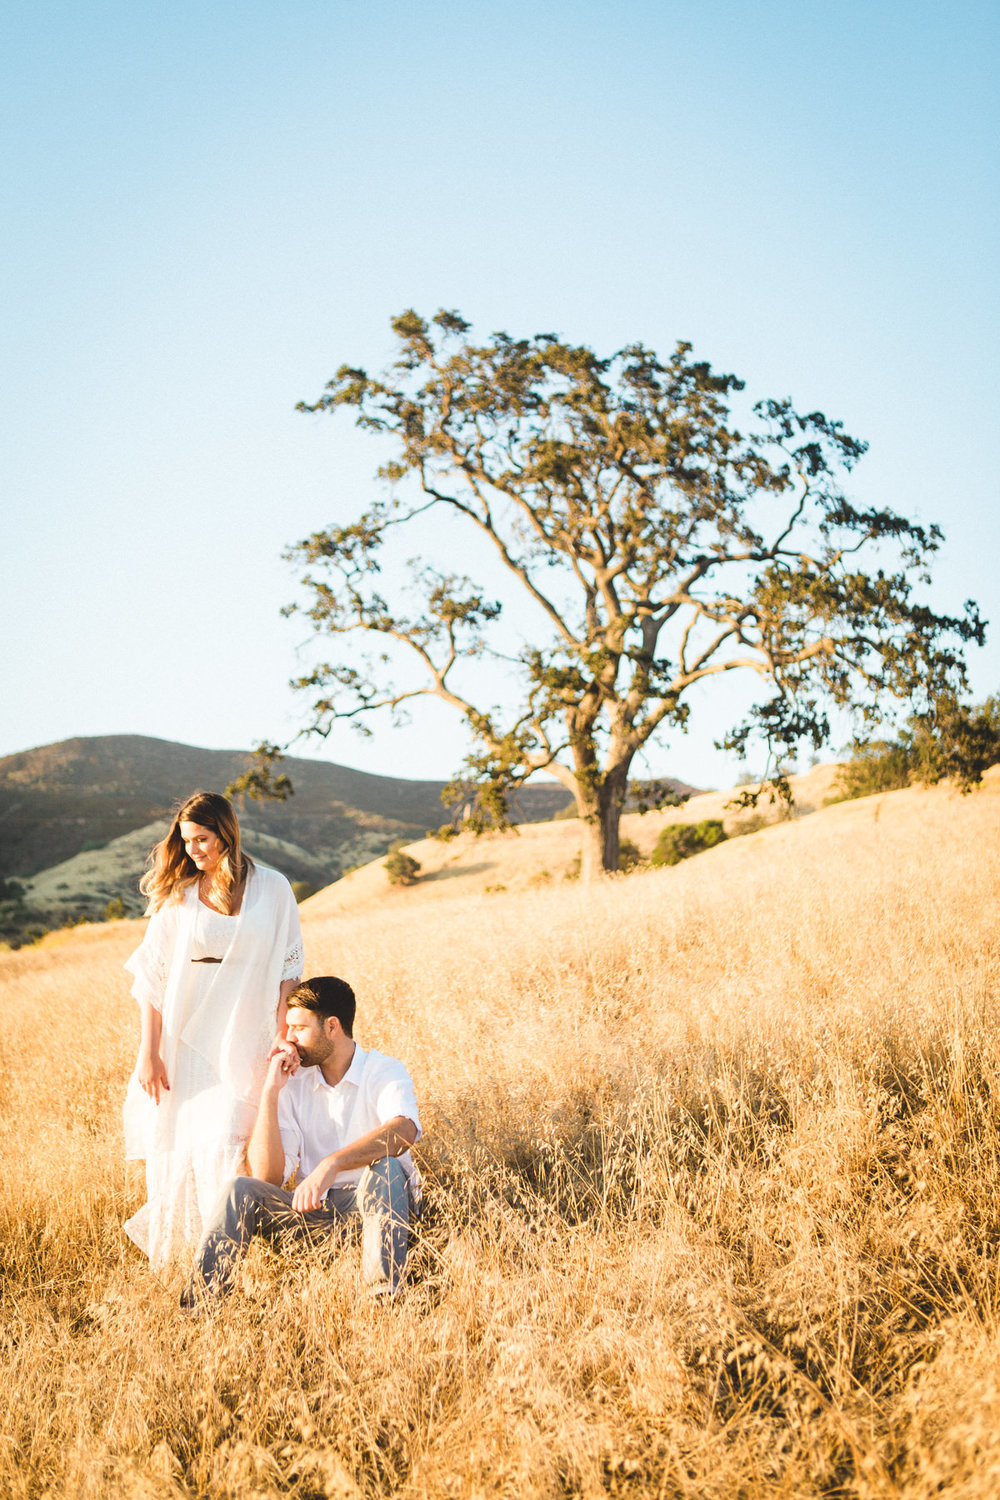 the-light-and-glass-wedding-engagement-photography-20160712-19-39-19.jpg